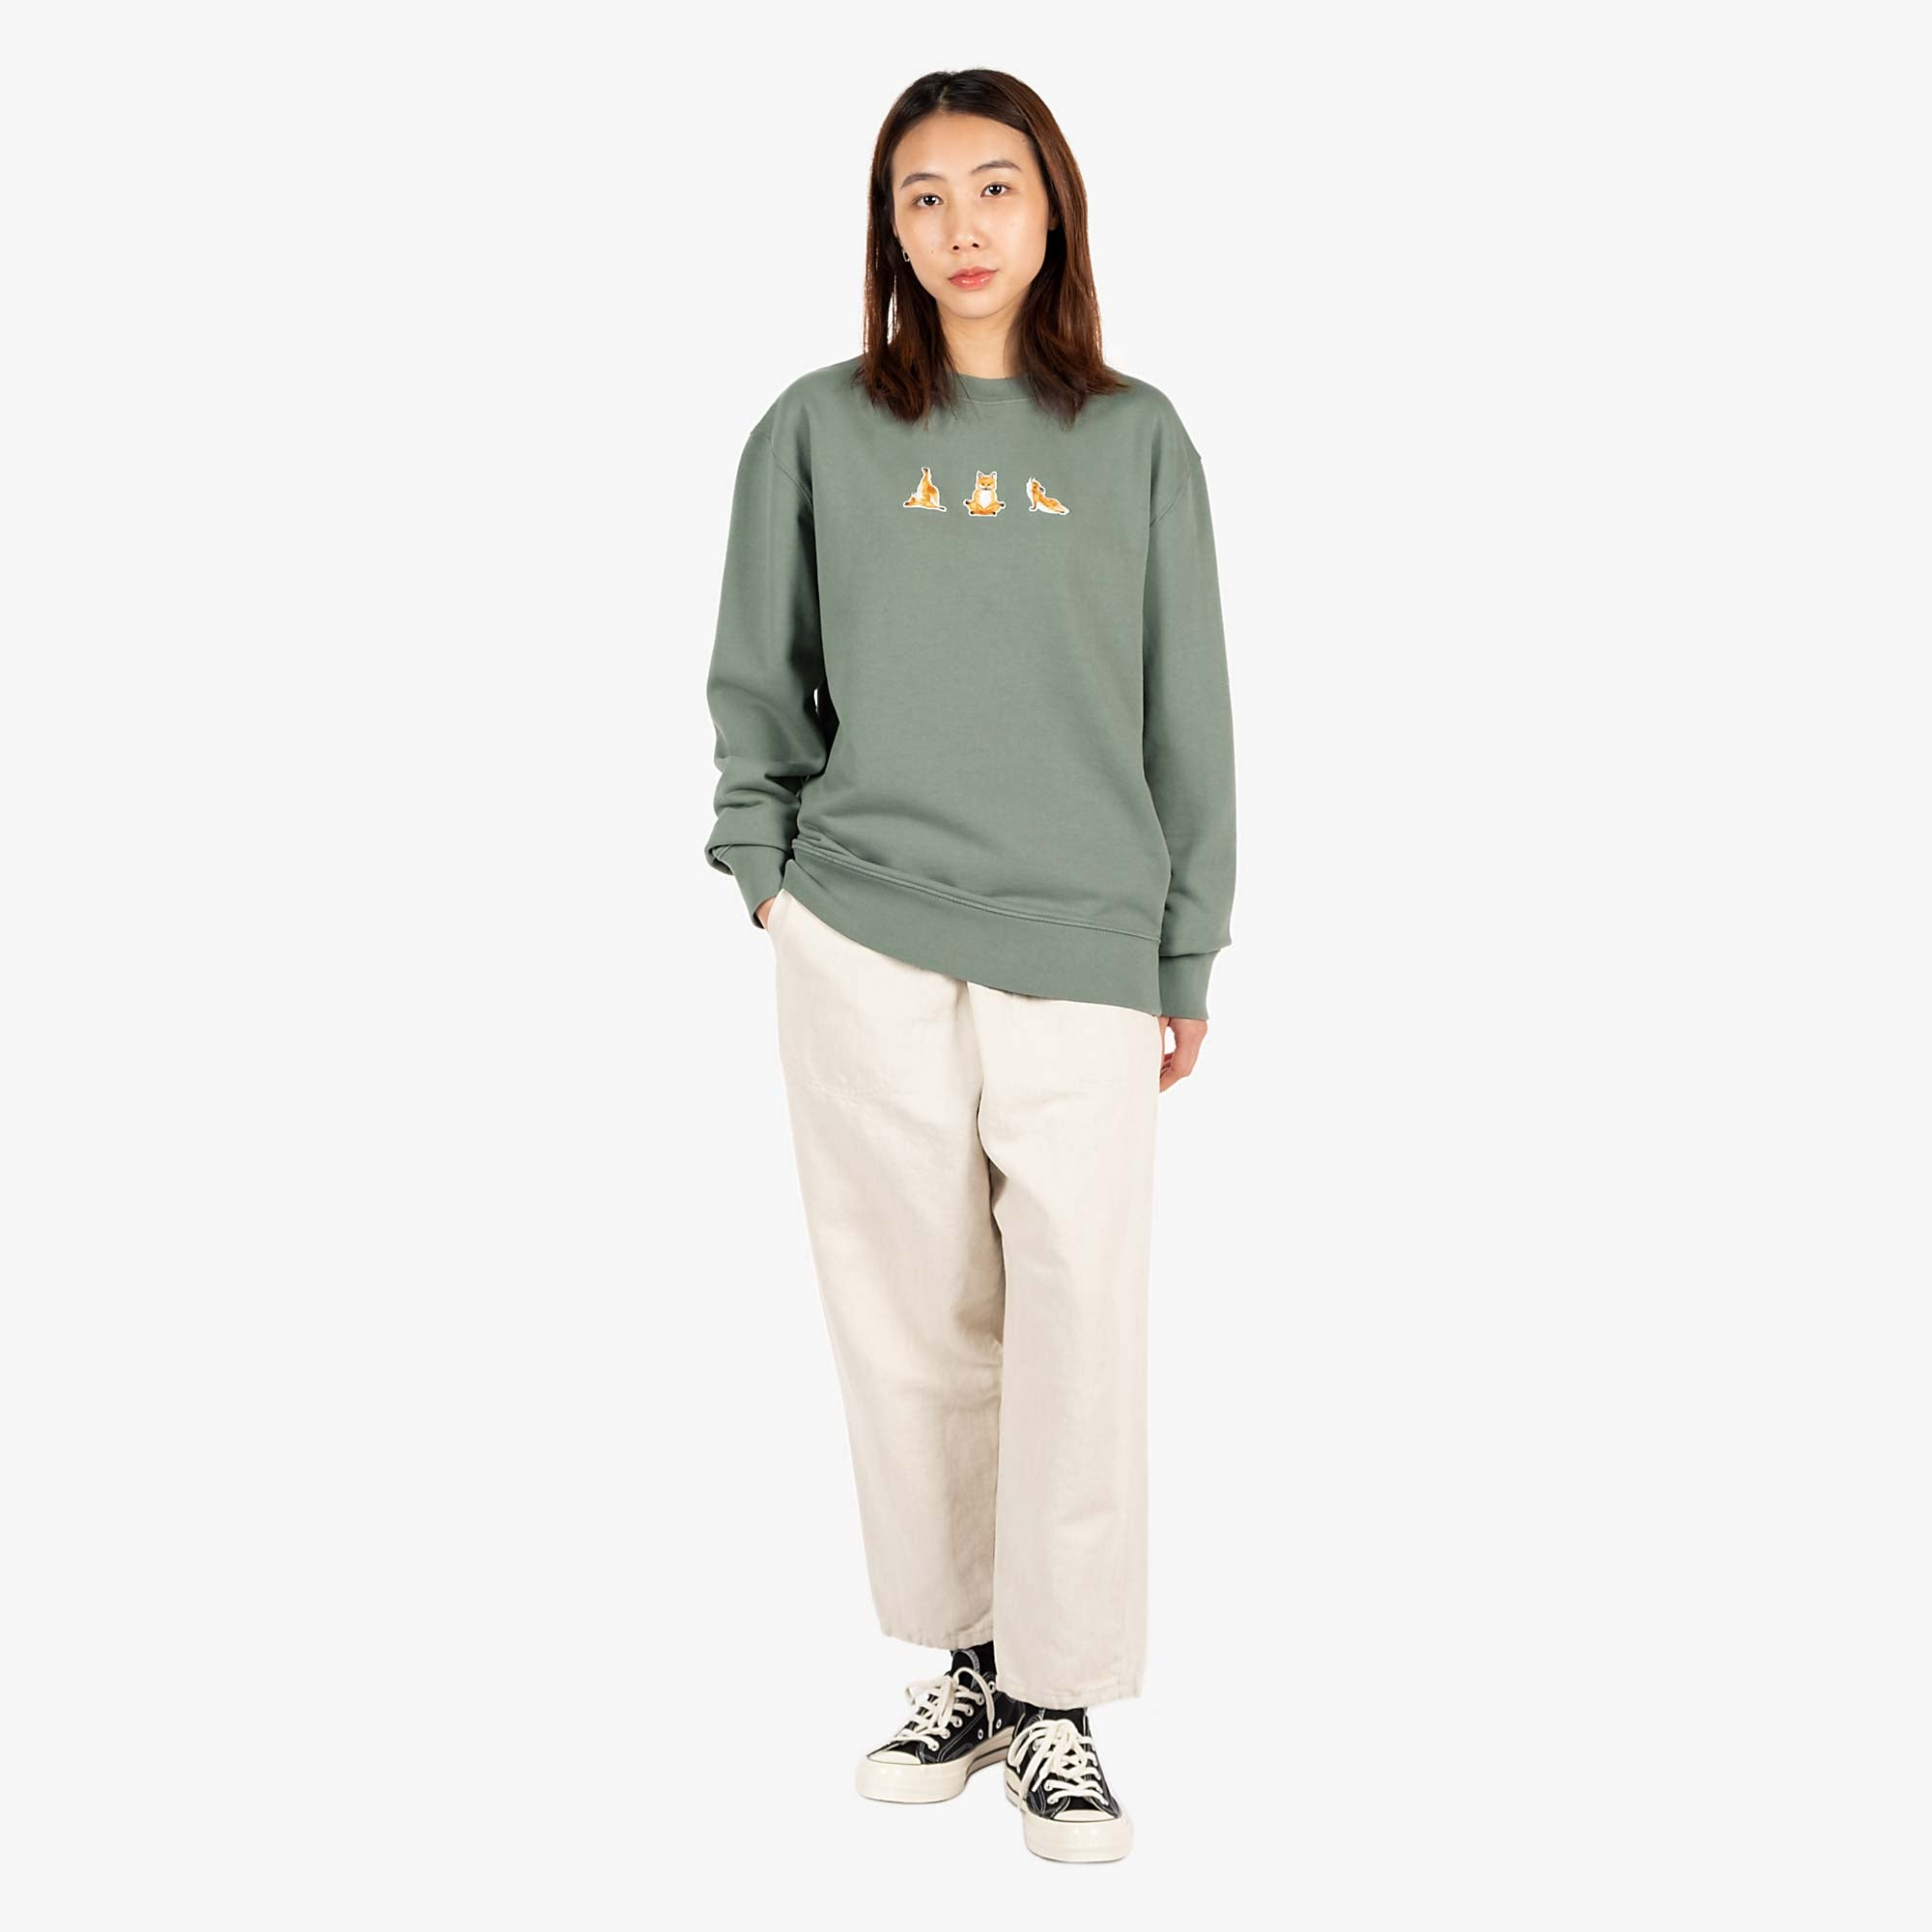 Maison Kitsune Womens Yoga Fox Patches Sweat - Blue / Green 2